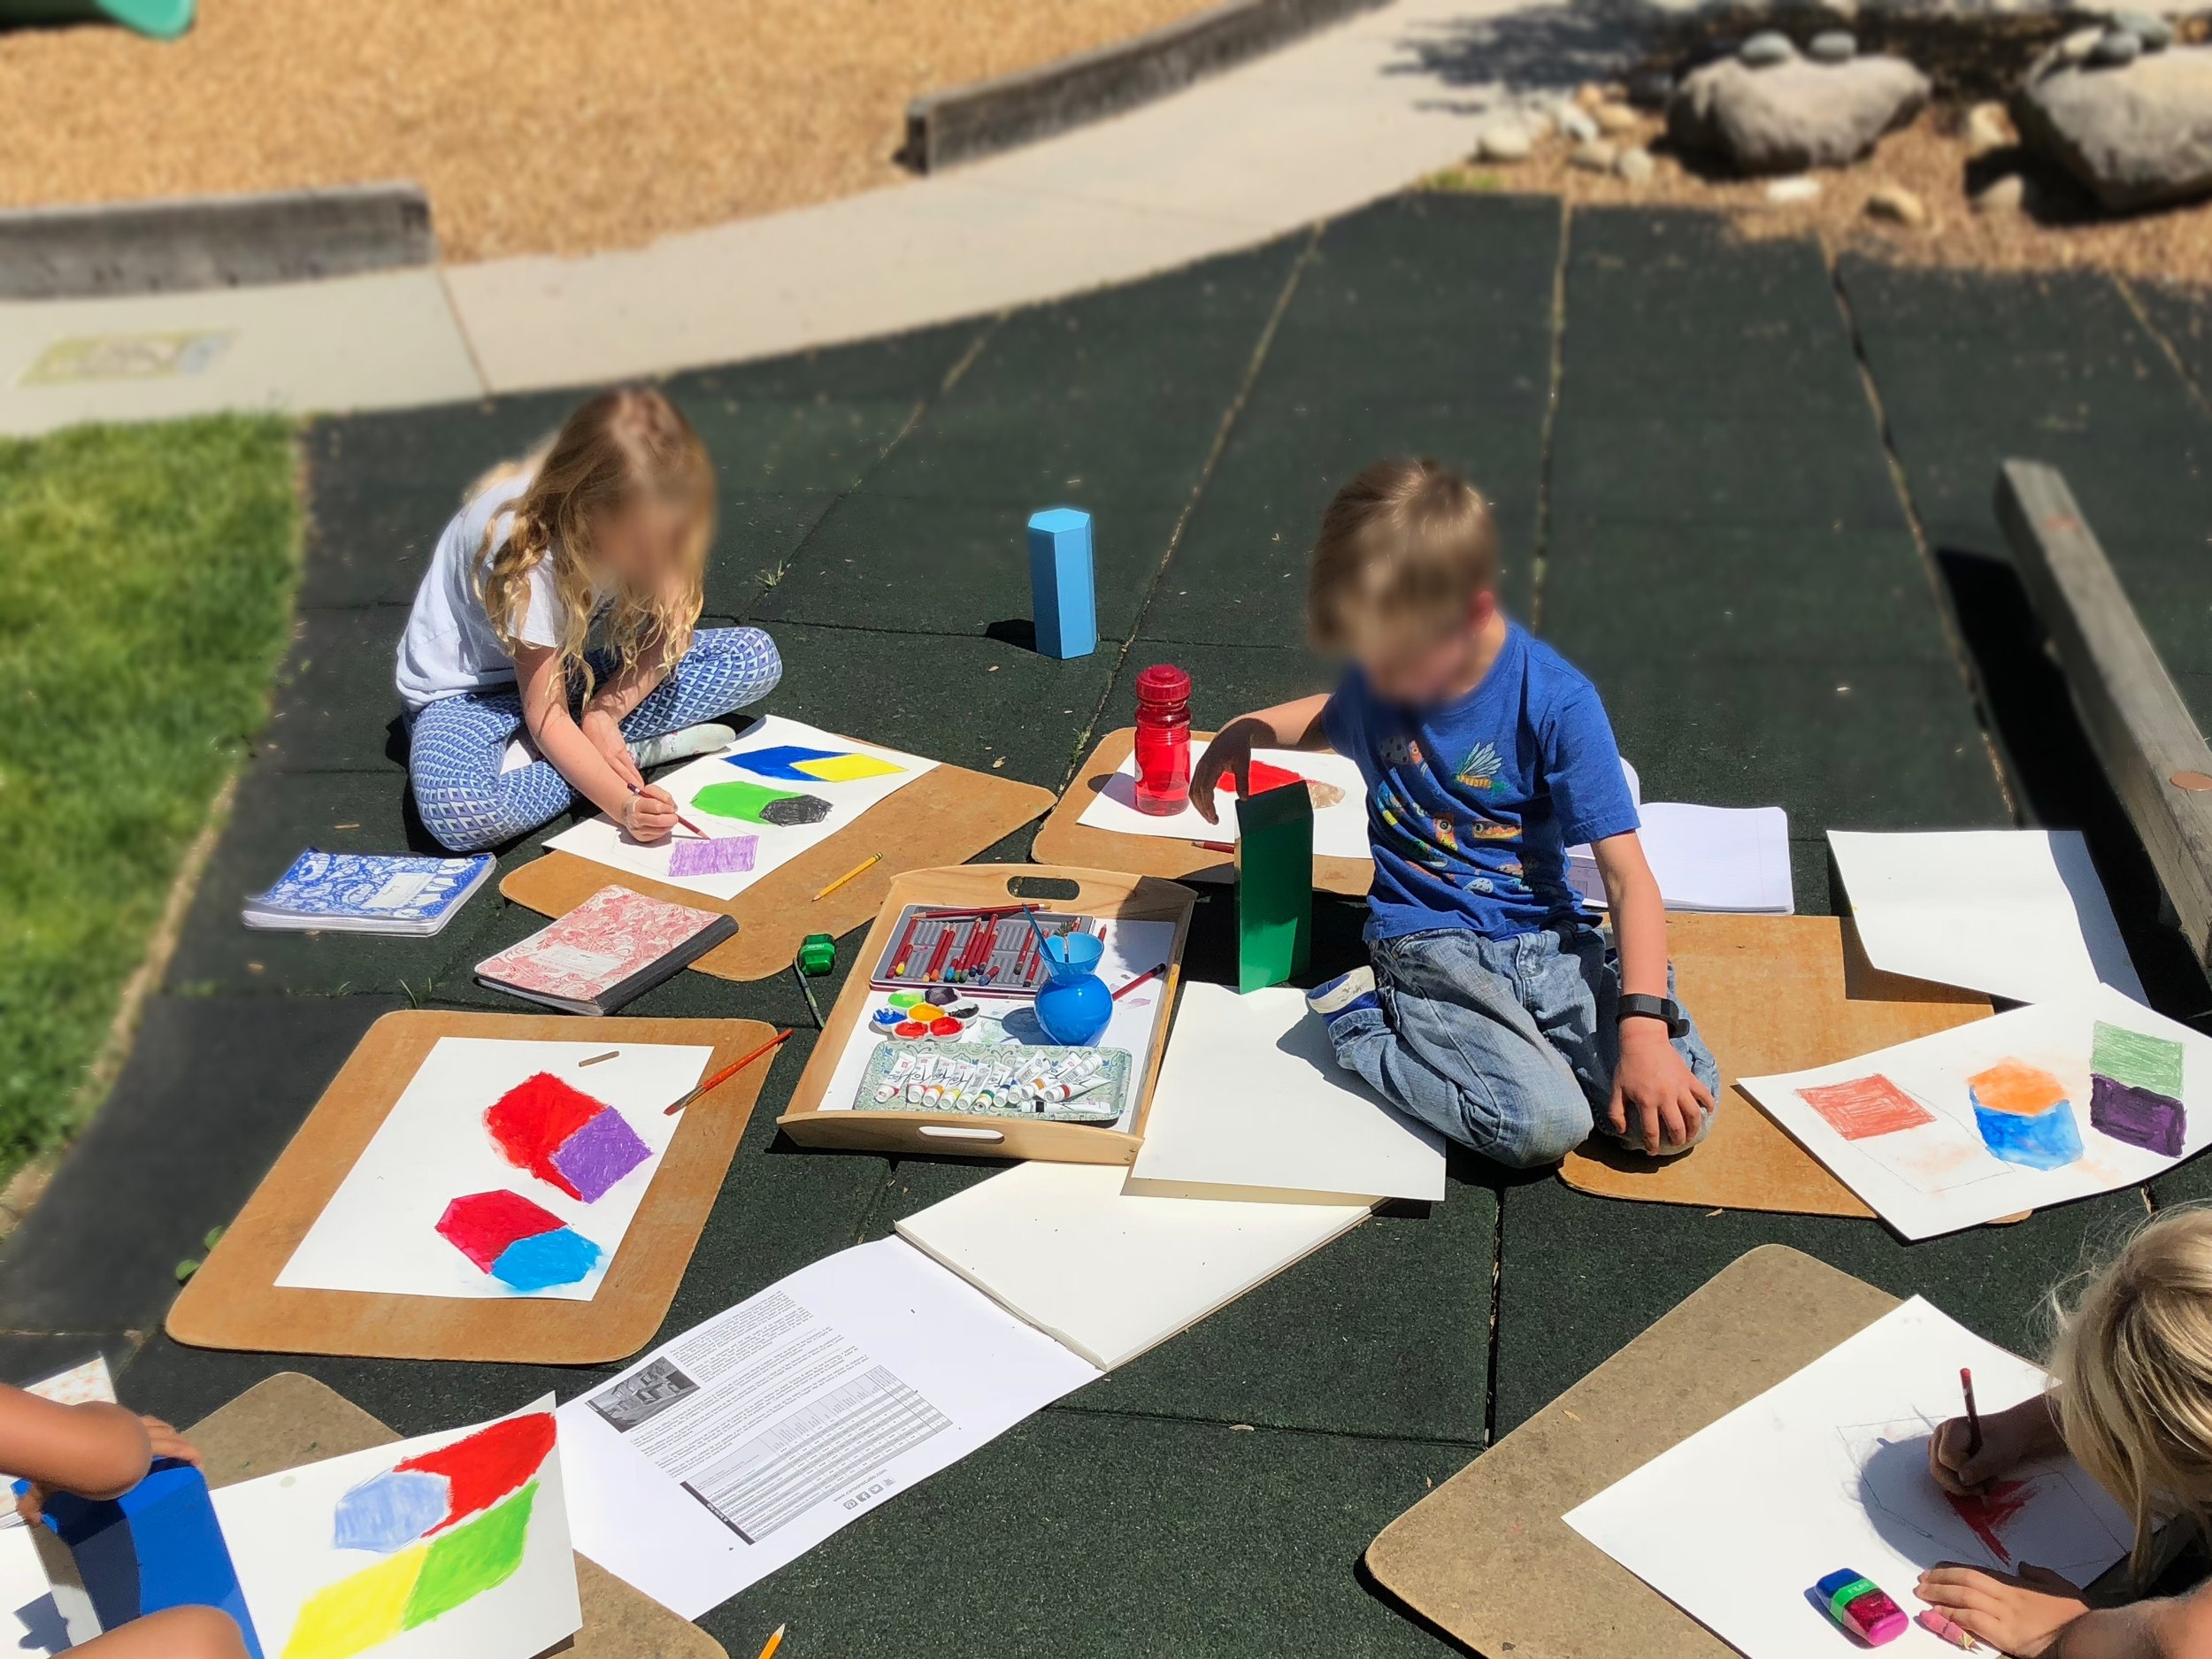 These friends got to spend an afternoon painting outside while experimenting with shadow art and the geometric solids.